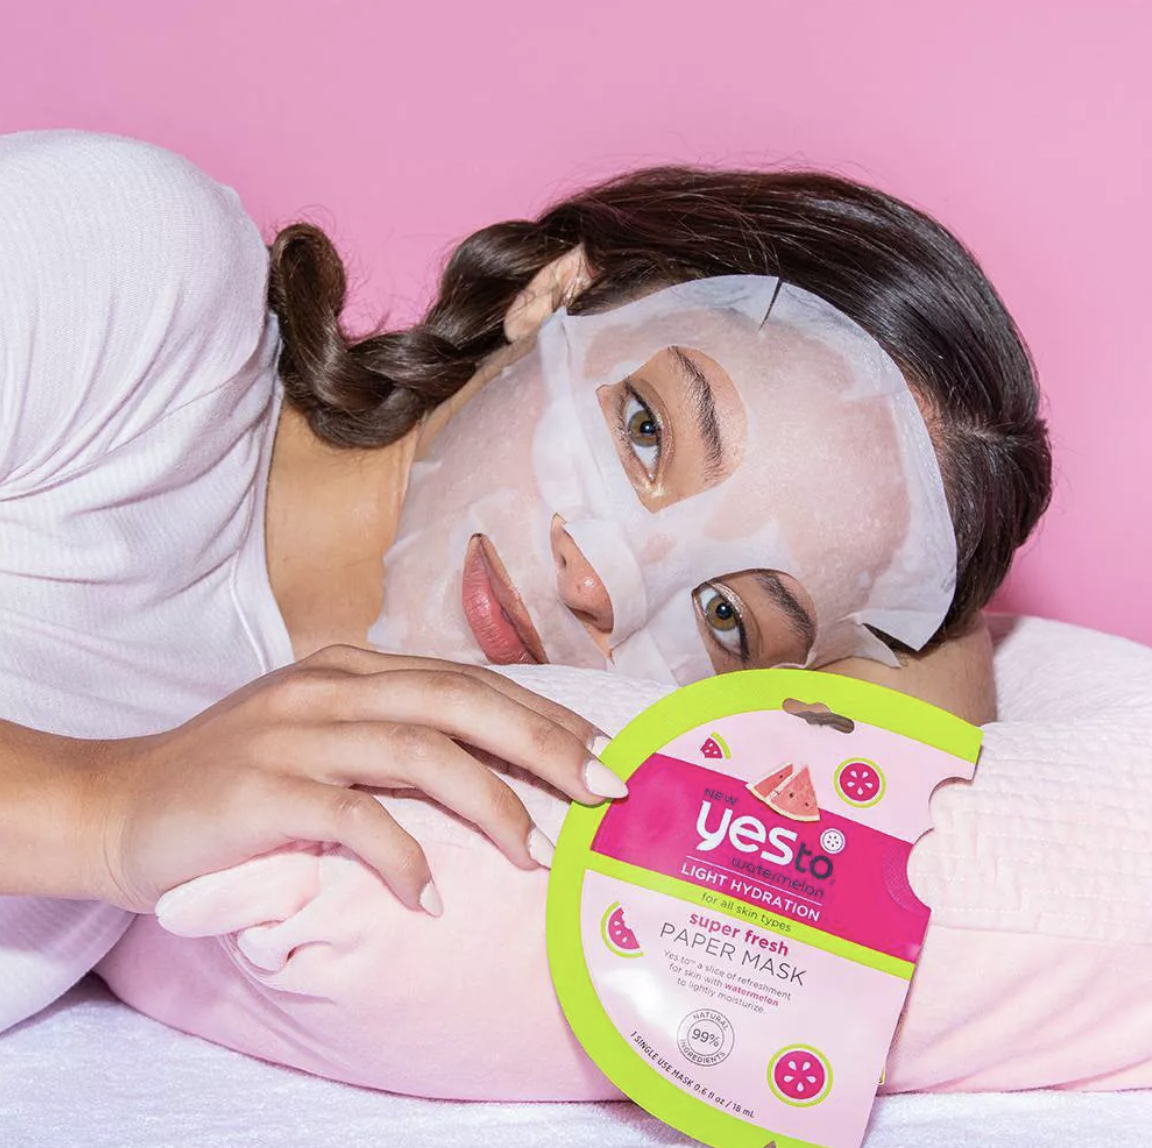 a model wearing a sheet mask and holding the pink and green packaging